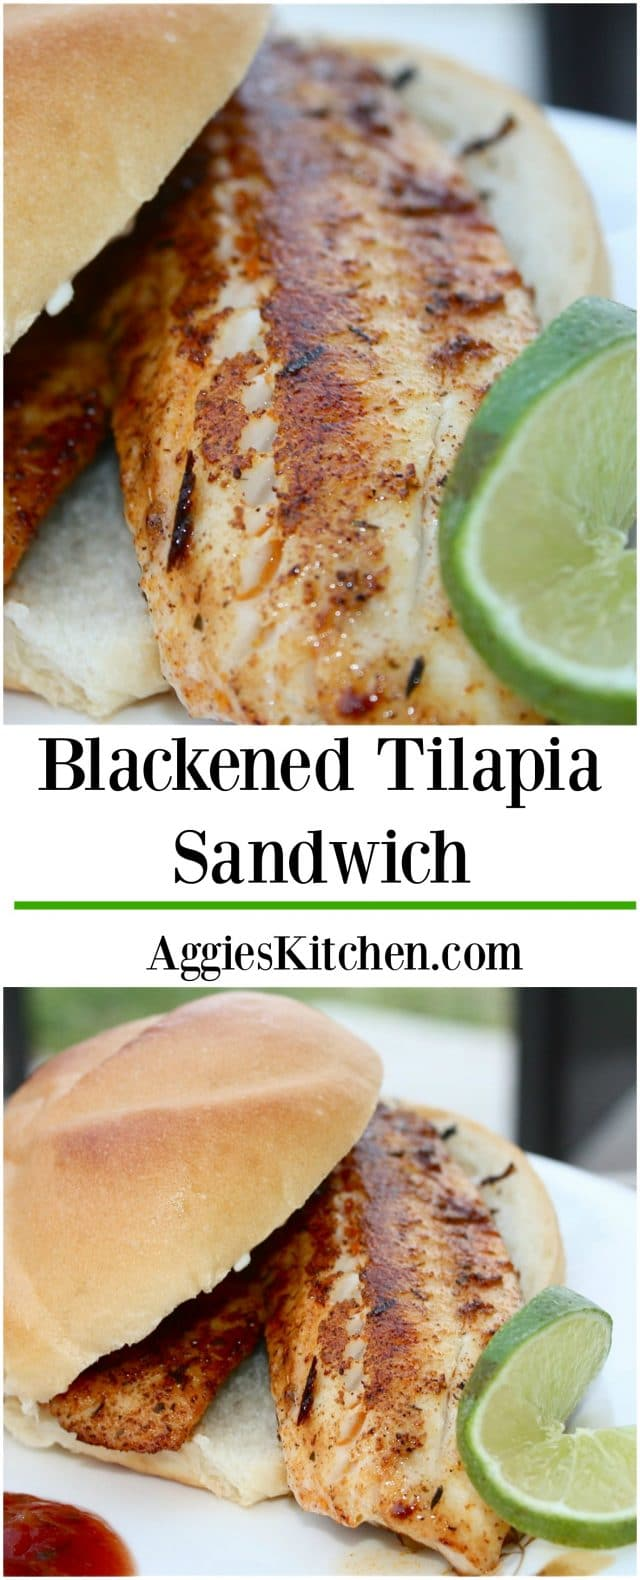 This Blackened Tilapia Sandwich with Cilantro Lime Mayonnaise is a great weeknight meal. Serve on salad for low carb option.